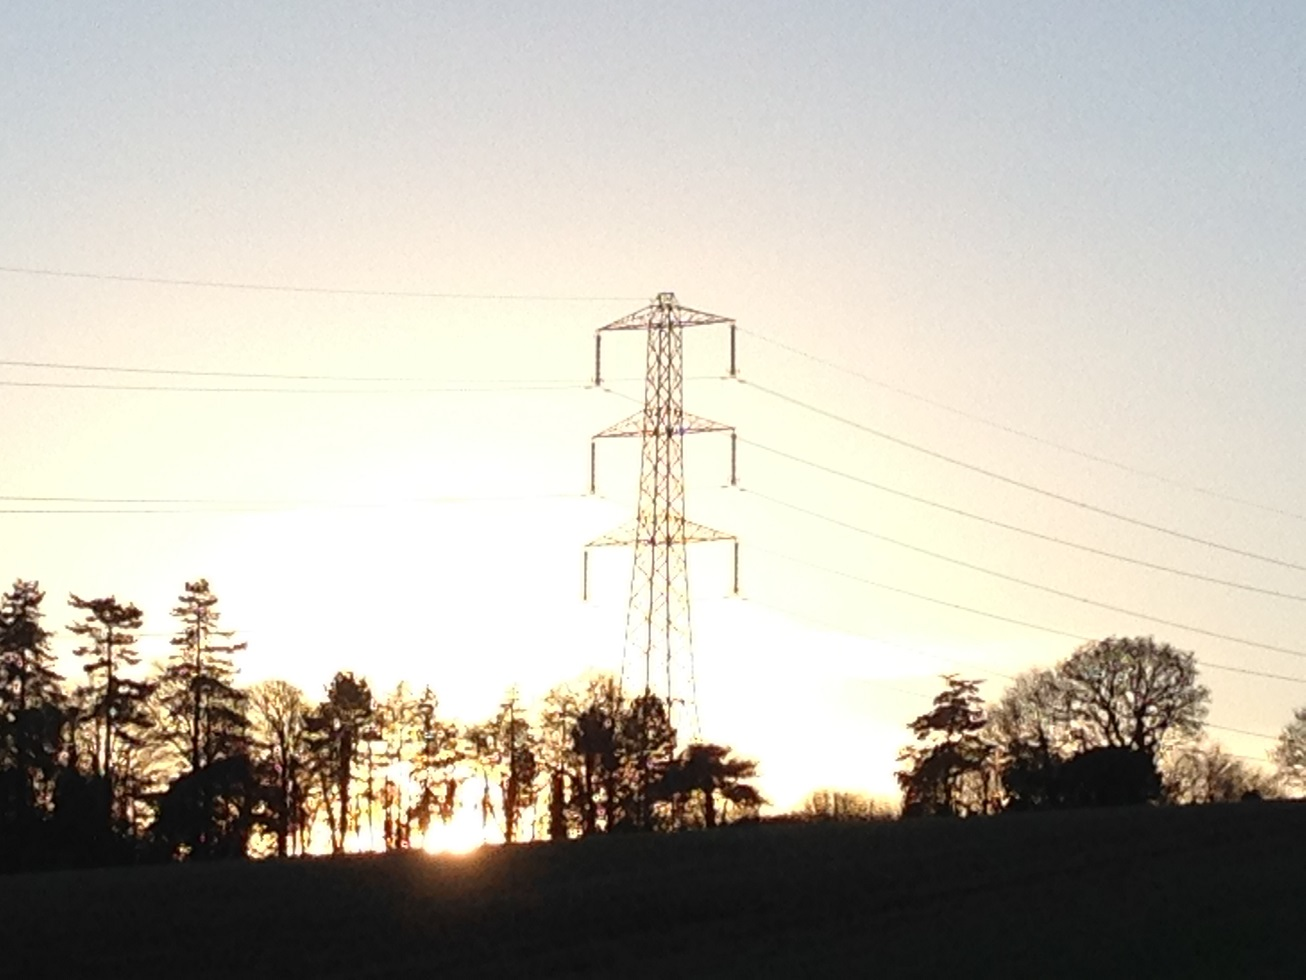 Electricity pylon with the setting sun